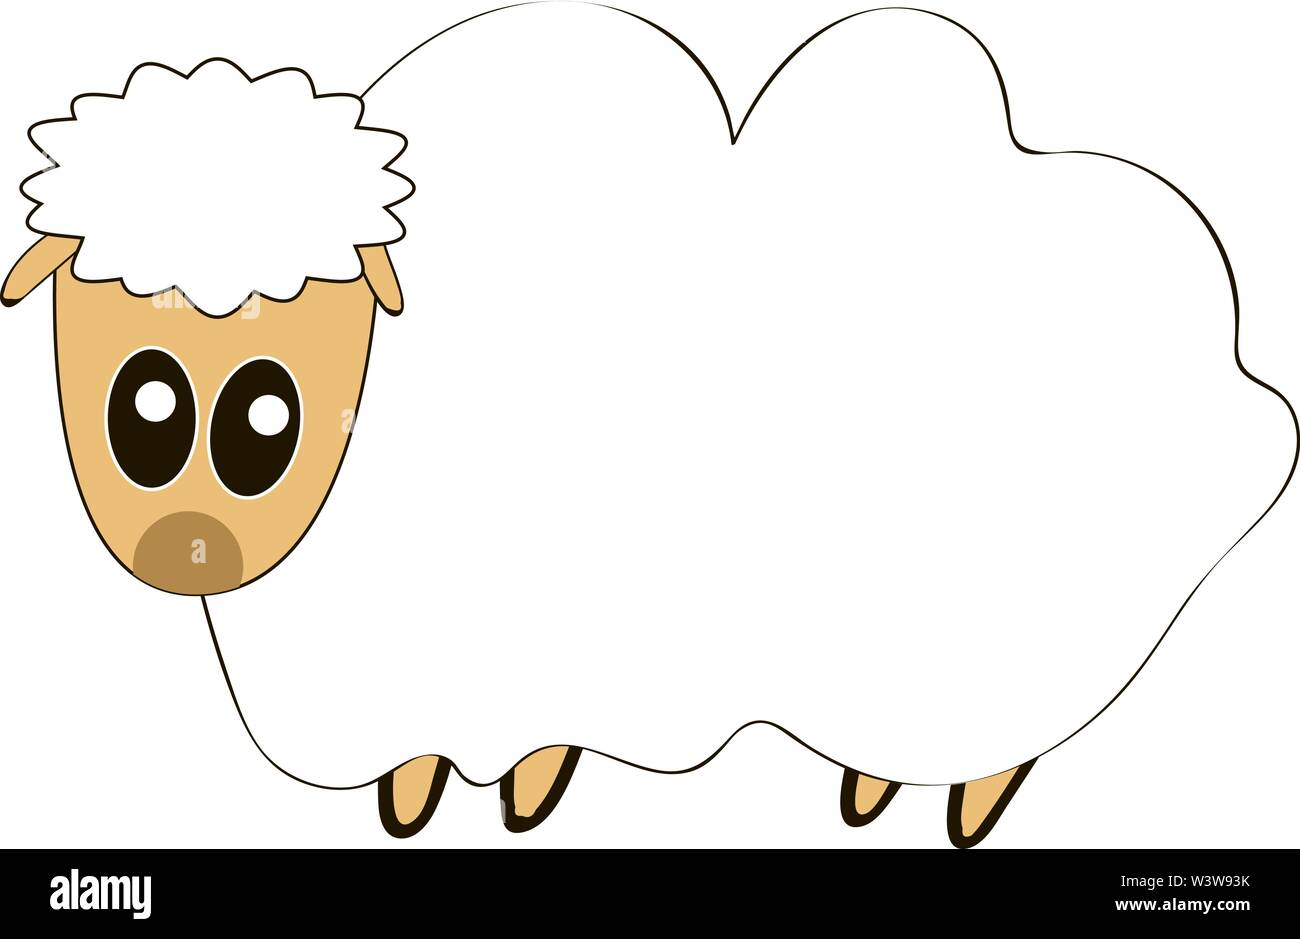 Fat sheep, illustration, vector on white background. Stock Vector